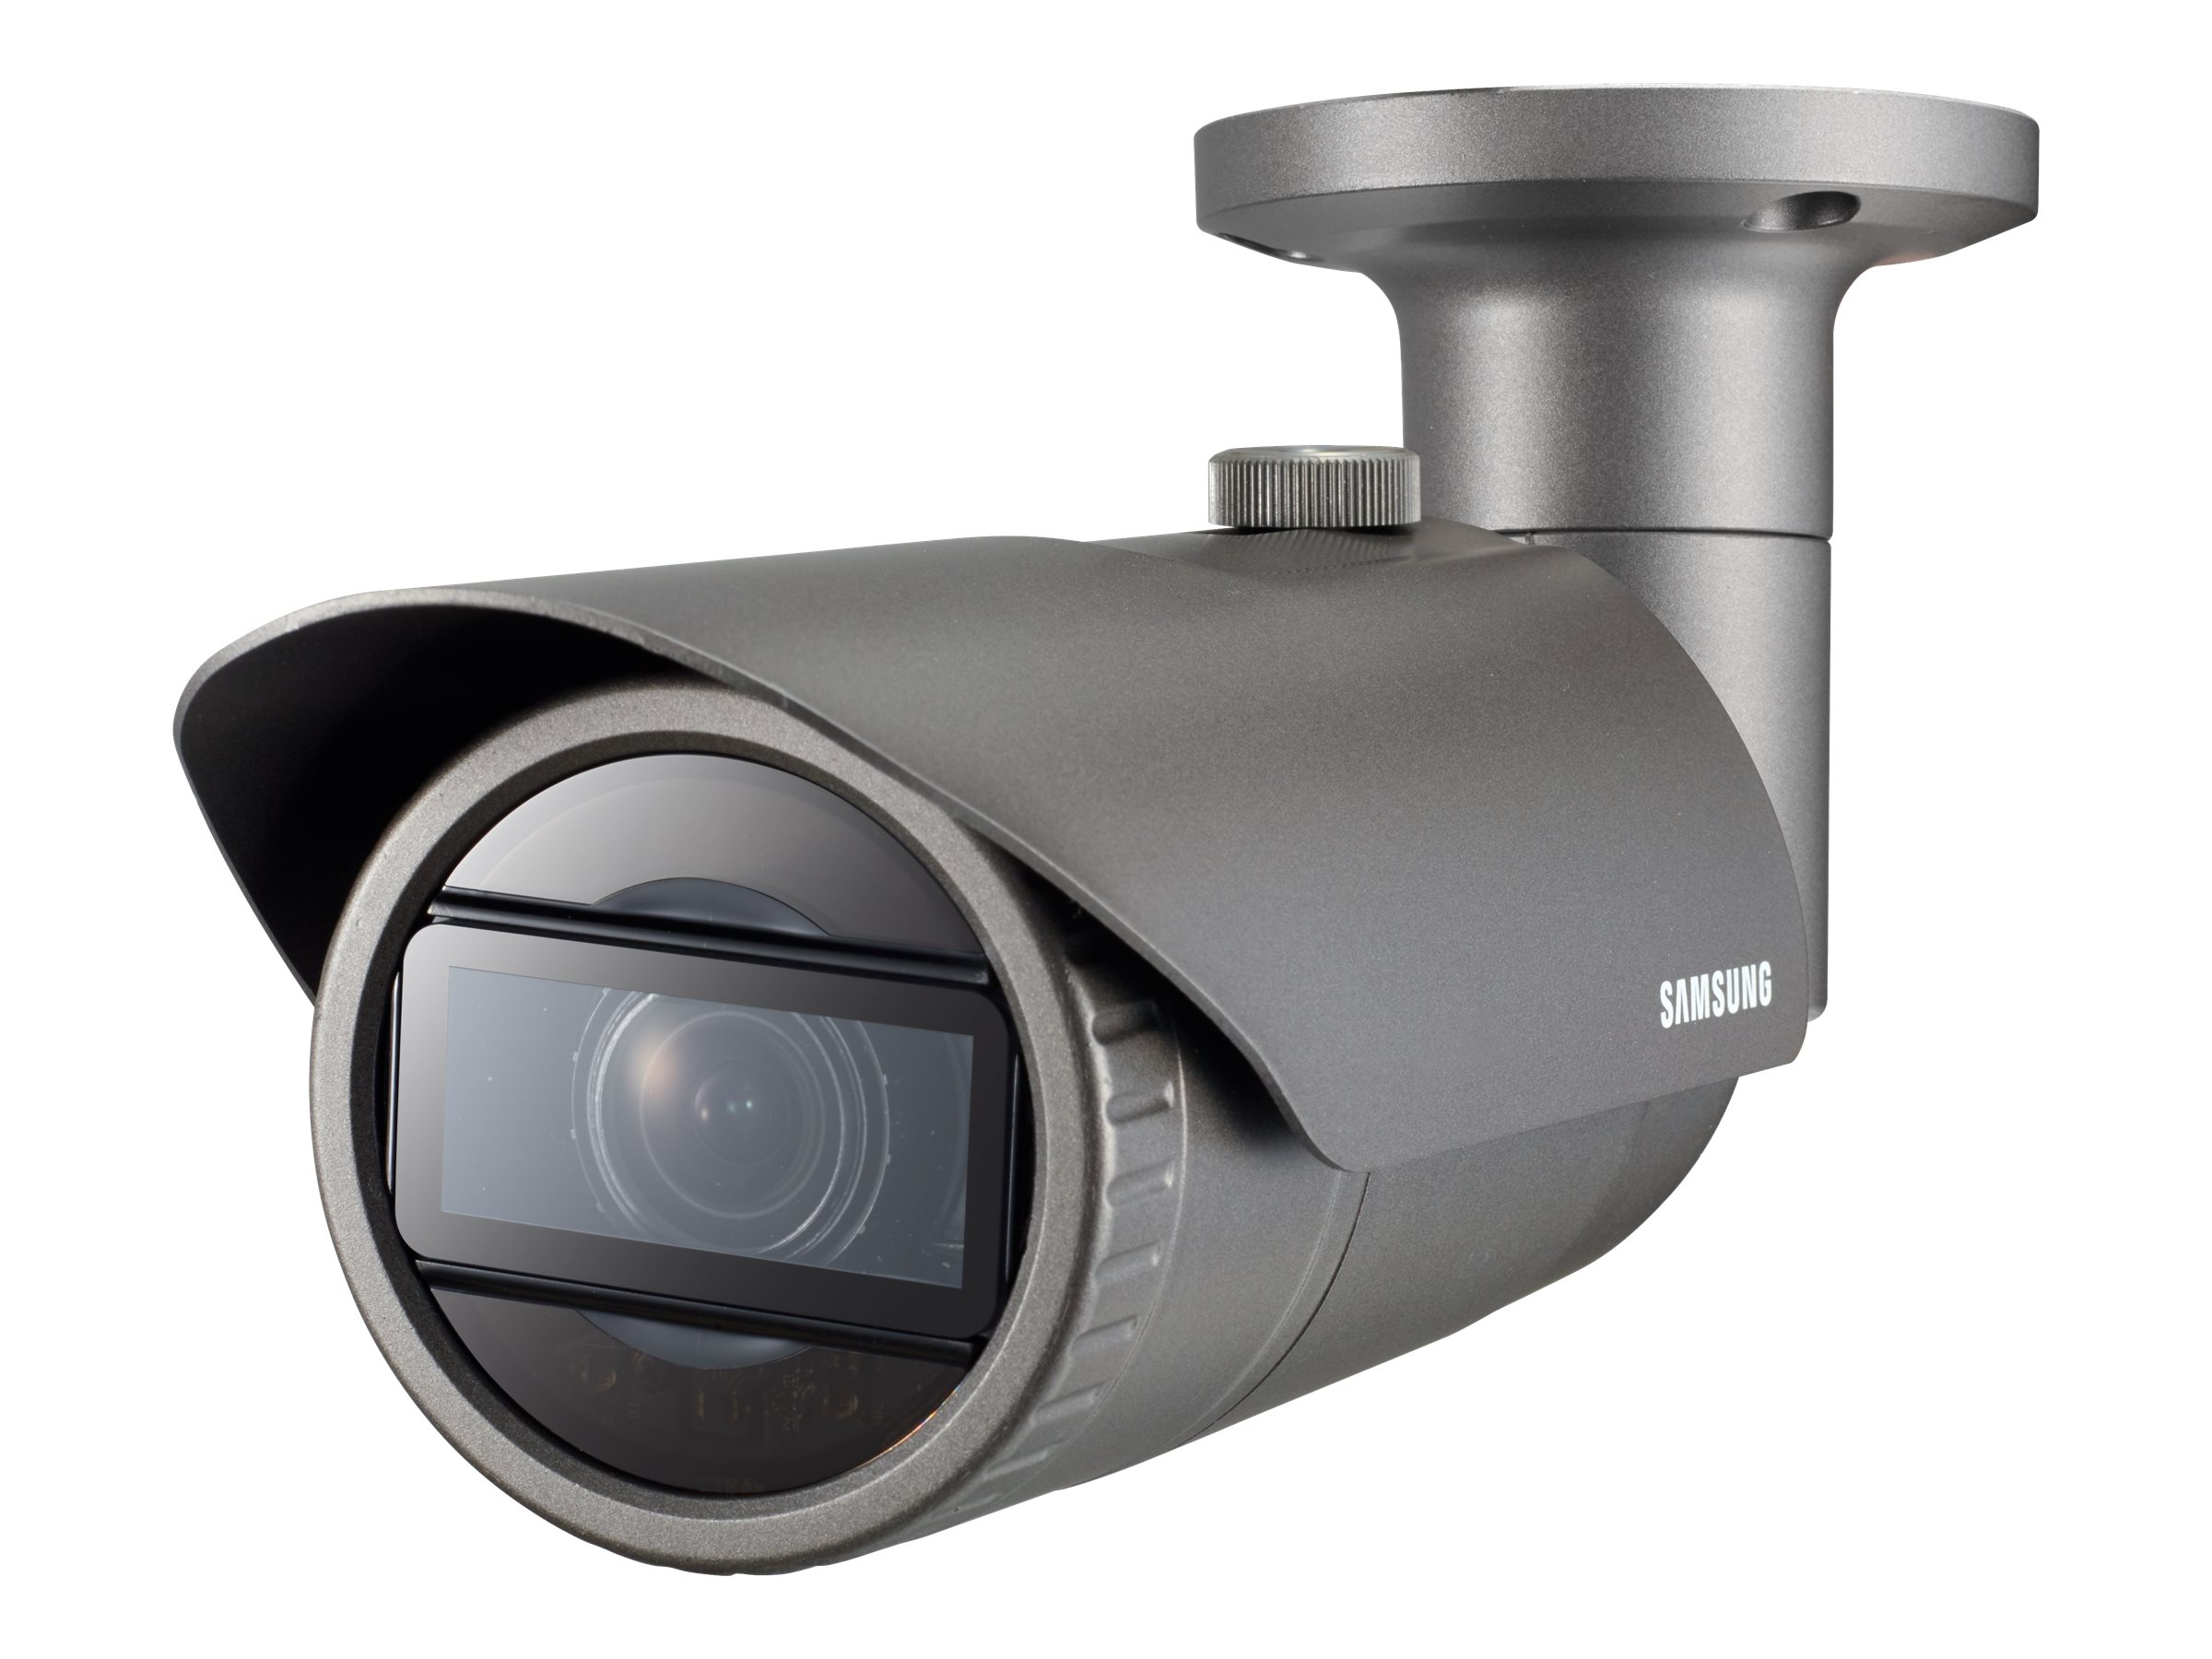 Samsung 2MP Full HD Network IR Bullet Camera with 2.8-12mm Lens, QNO-6070R